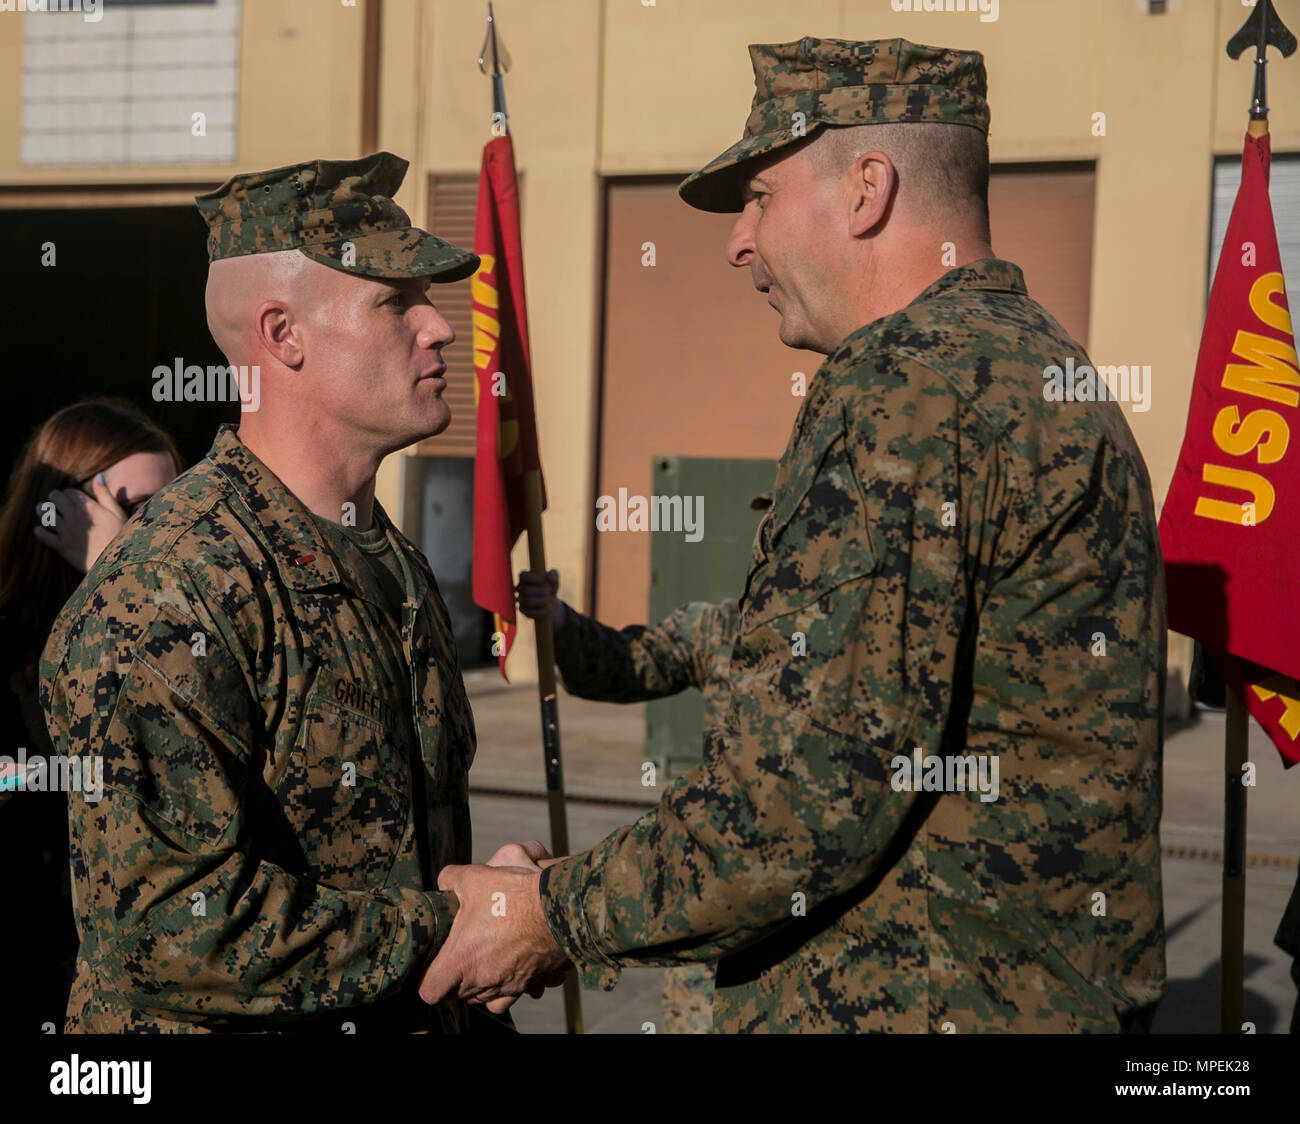 Warrant Officer Of The Year Stock Photos & Warrant Officer Of The ...